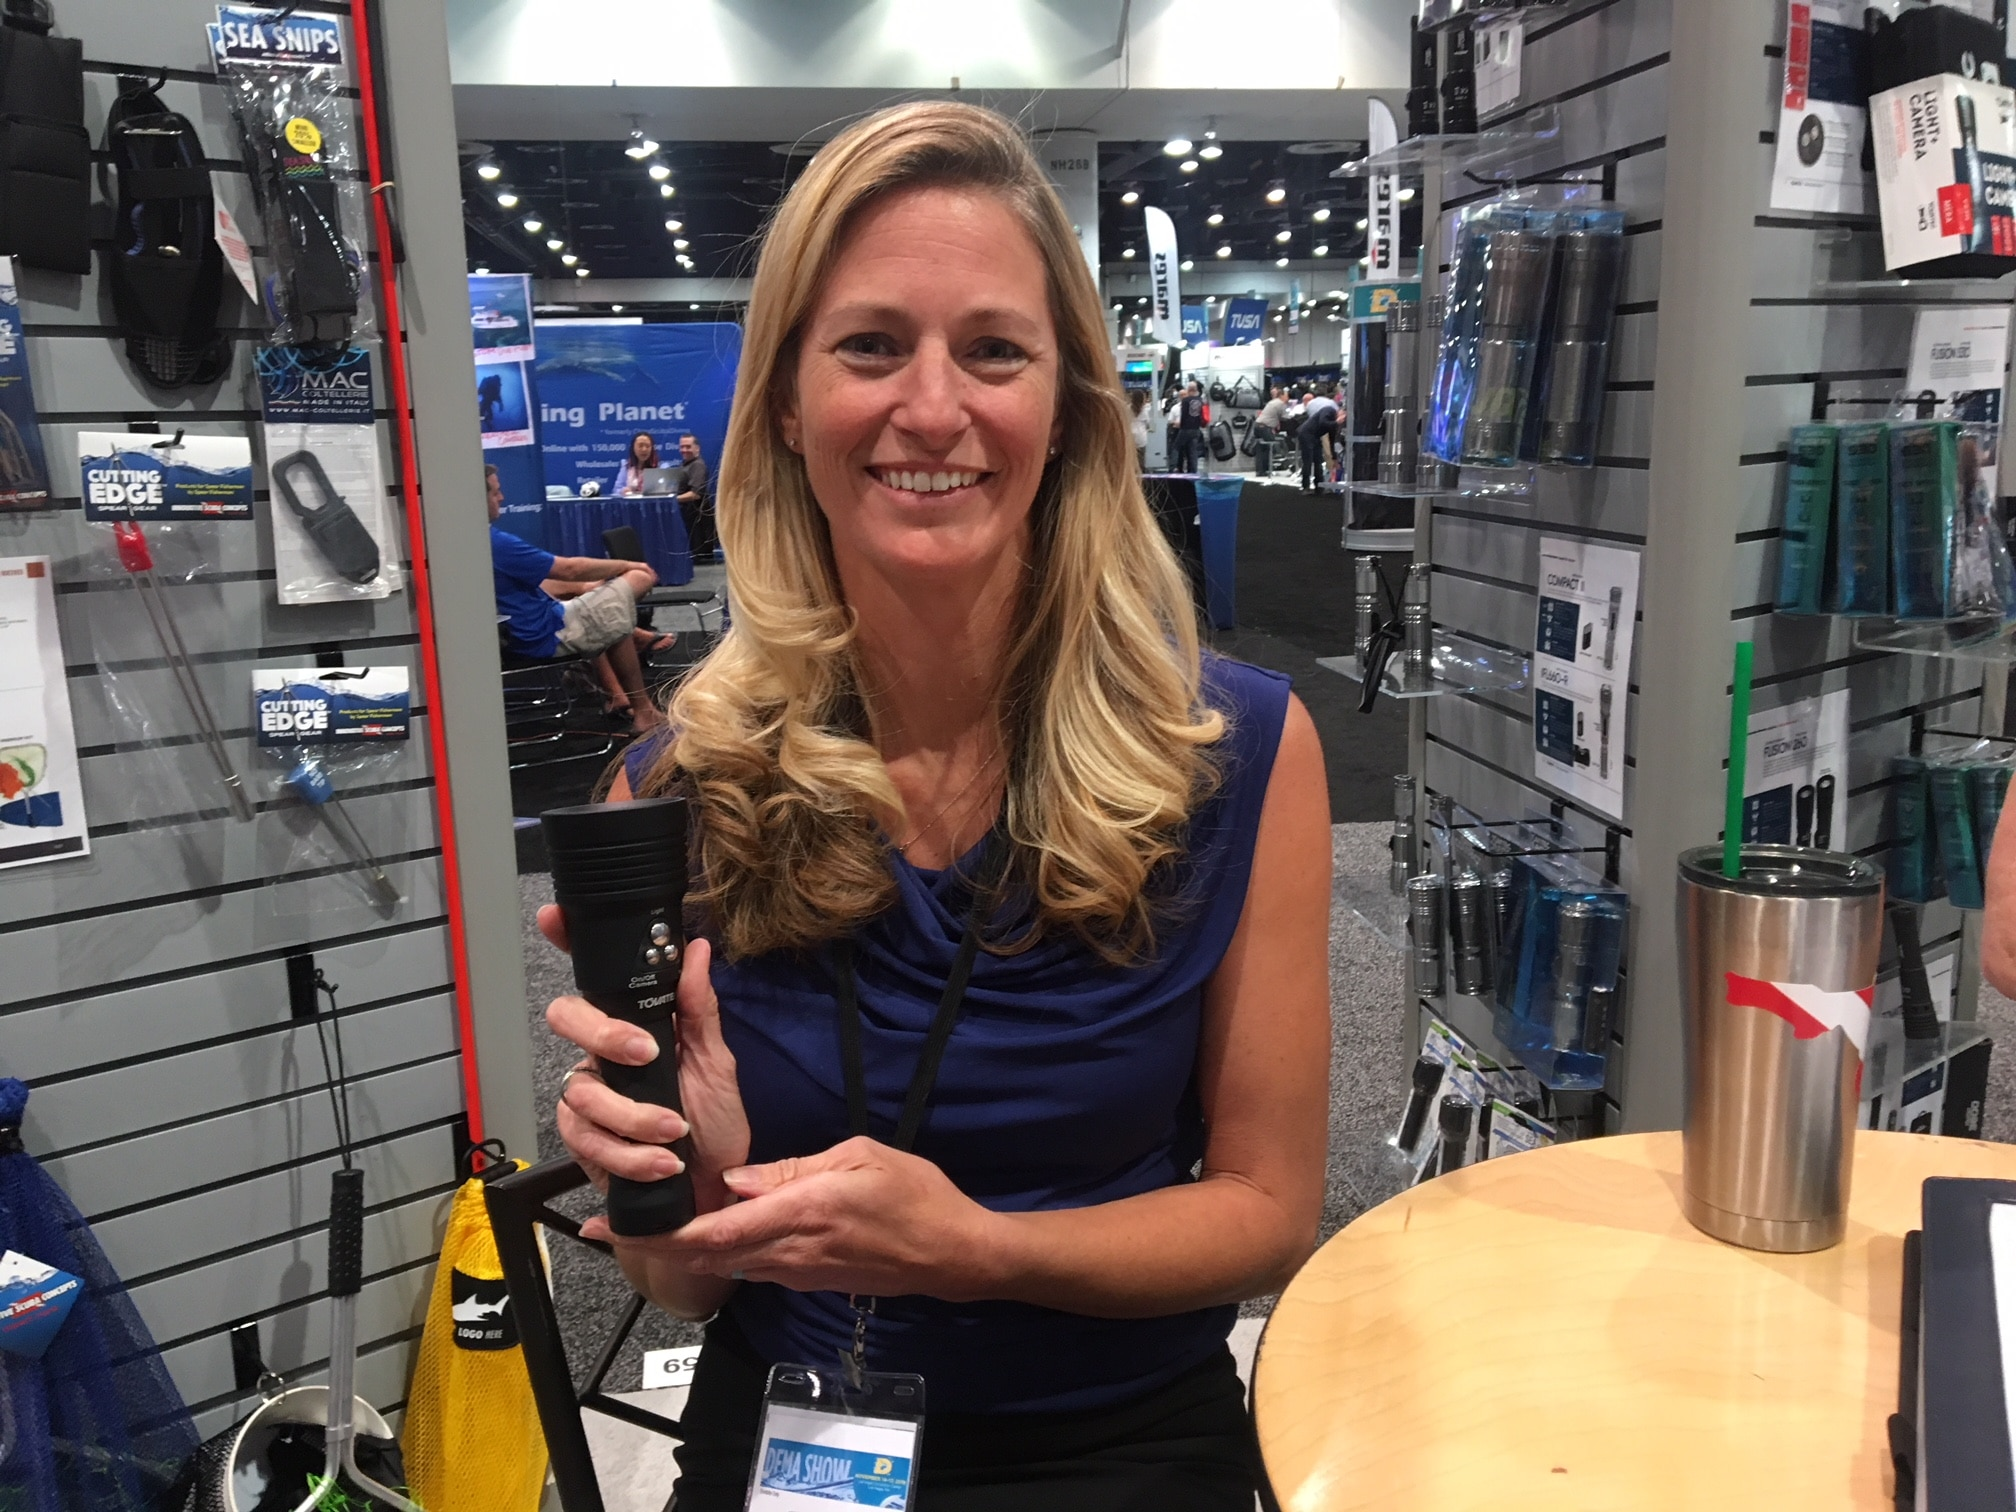 Innovative Scuba Concepts' Jenni Fultz with the Tovatec integrated camera and dive light.